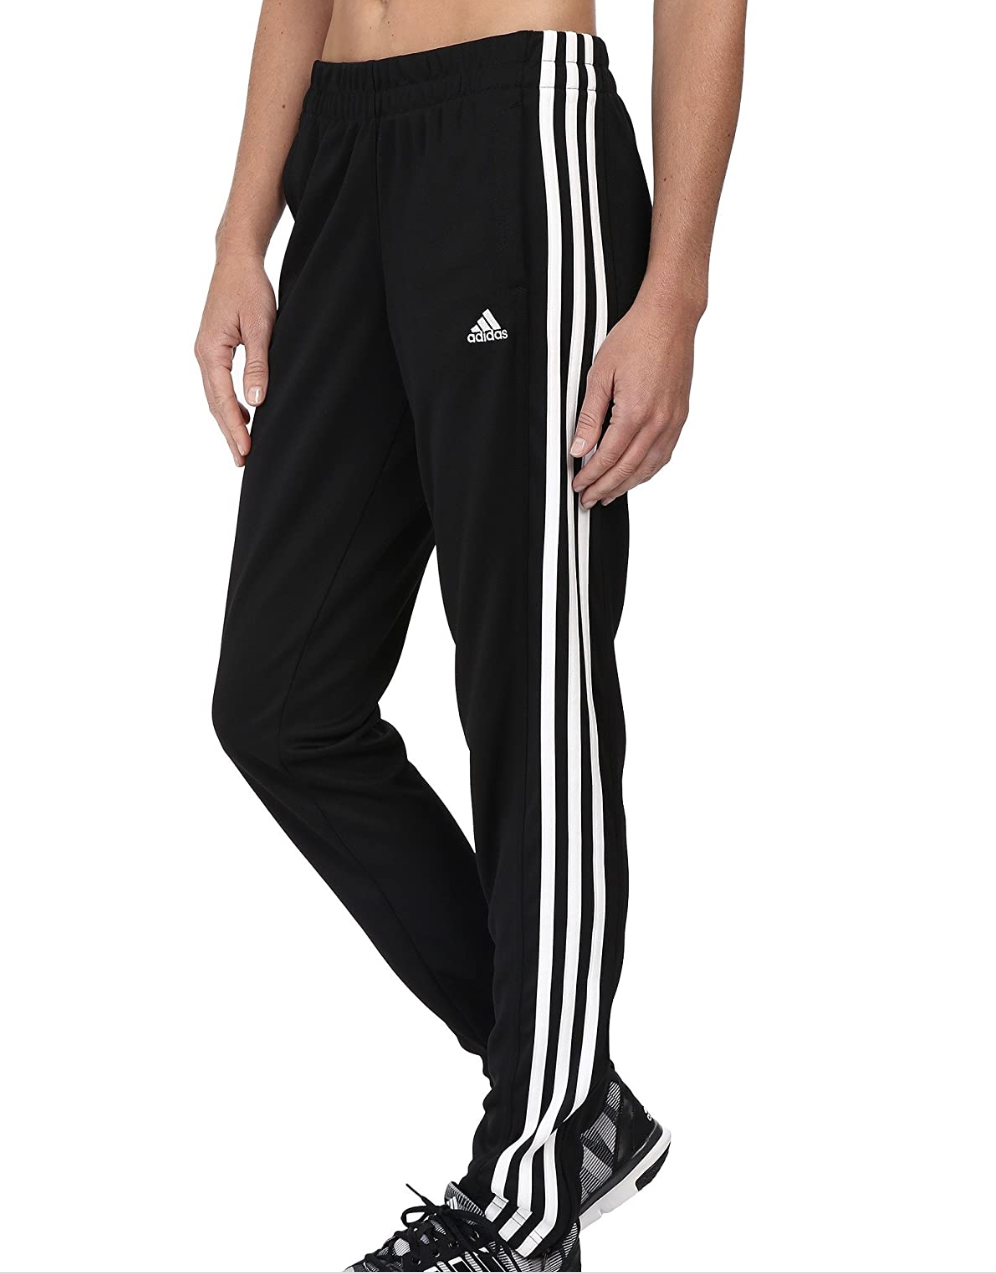 A model in black track pants with three white stripes on the side